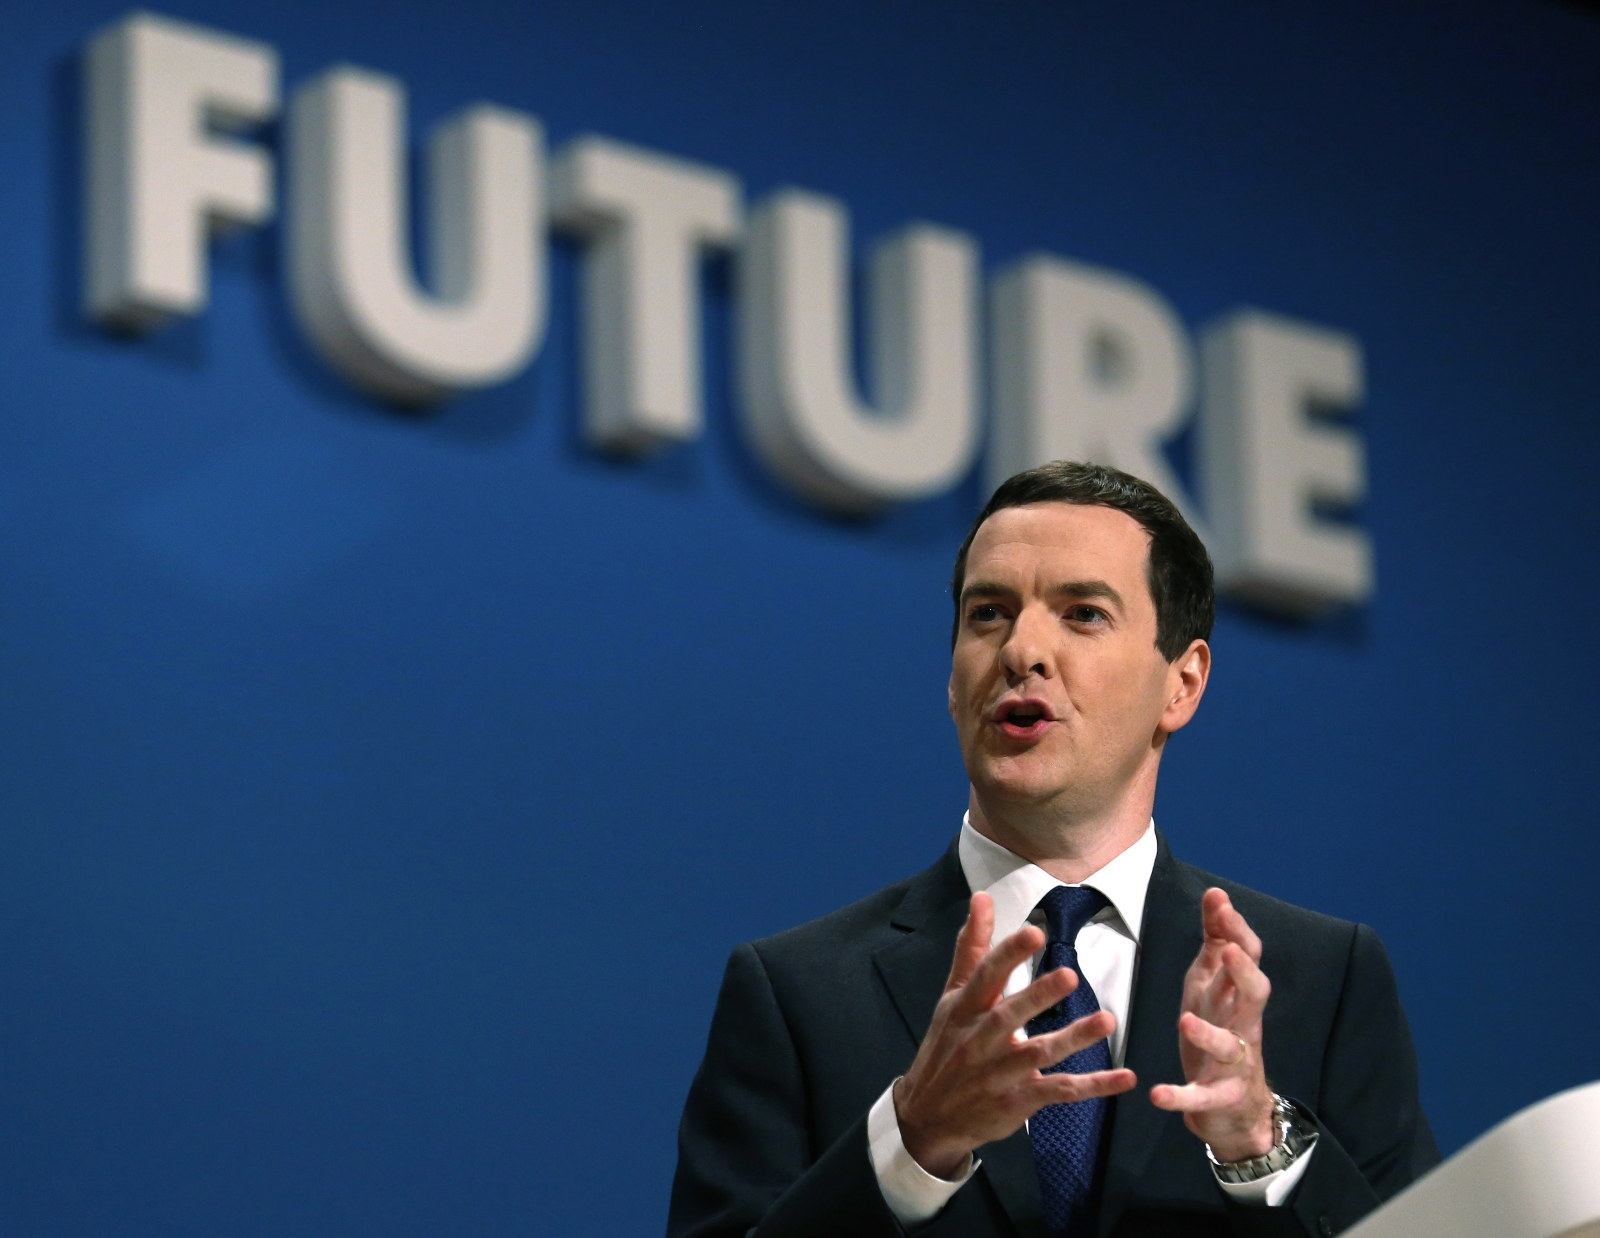 Britain's Chancellor George Osborne speaks on the second day of the Conservative Party Conference in Birmingham central England September 29, 2014